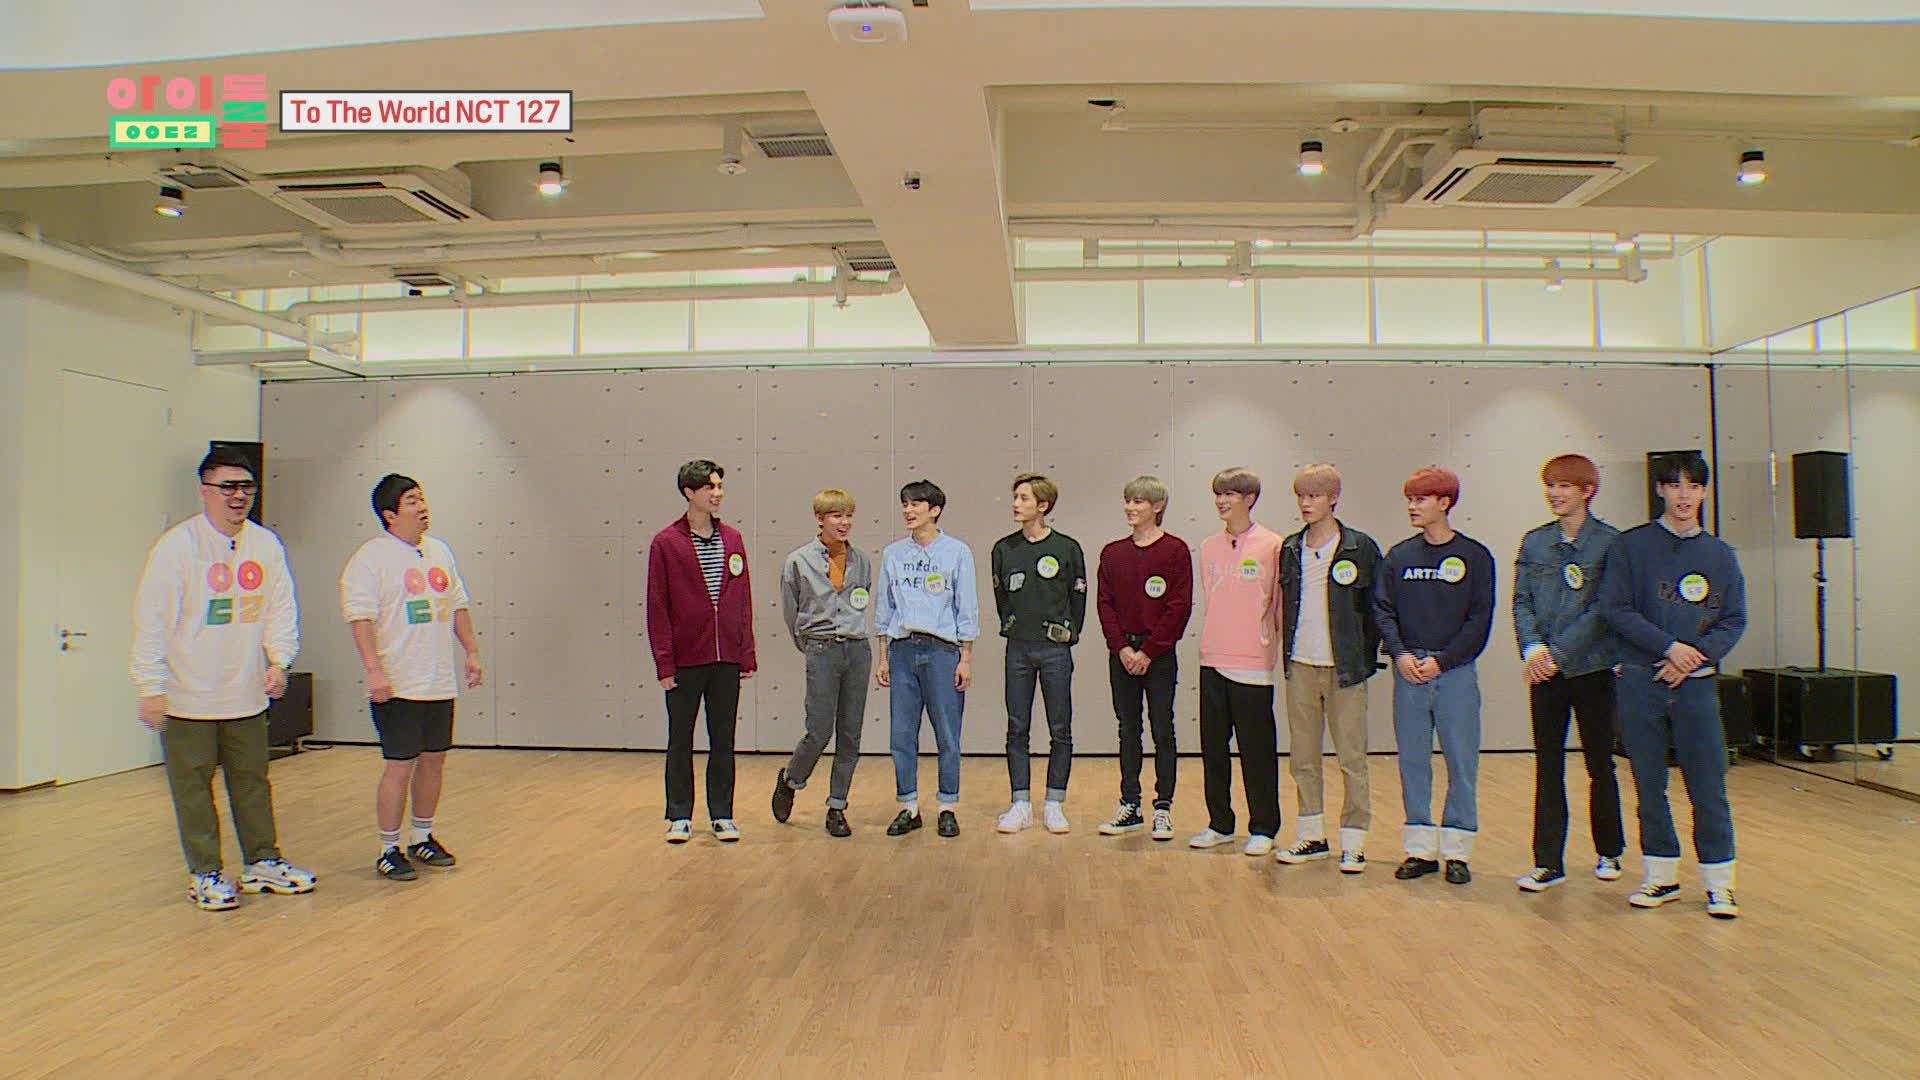 아이돌룸(IDOL ROOM) 23회 - 첫 정규 앨범으로 돌아온 SM의 미래☆NCT 127! SM's future NCT 127 is back with a regular album